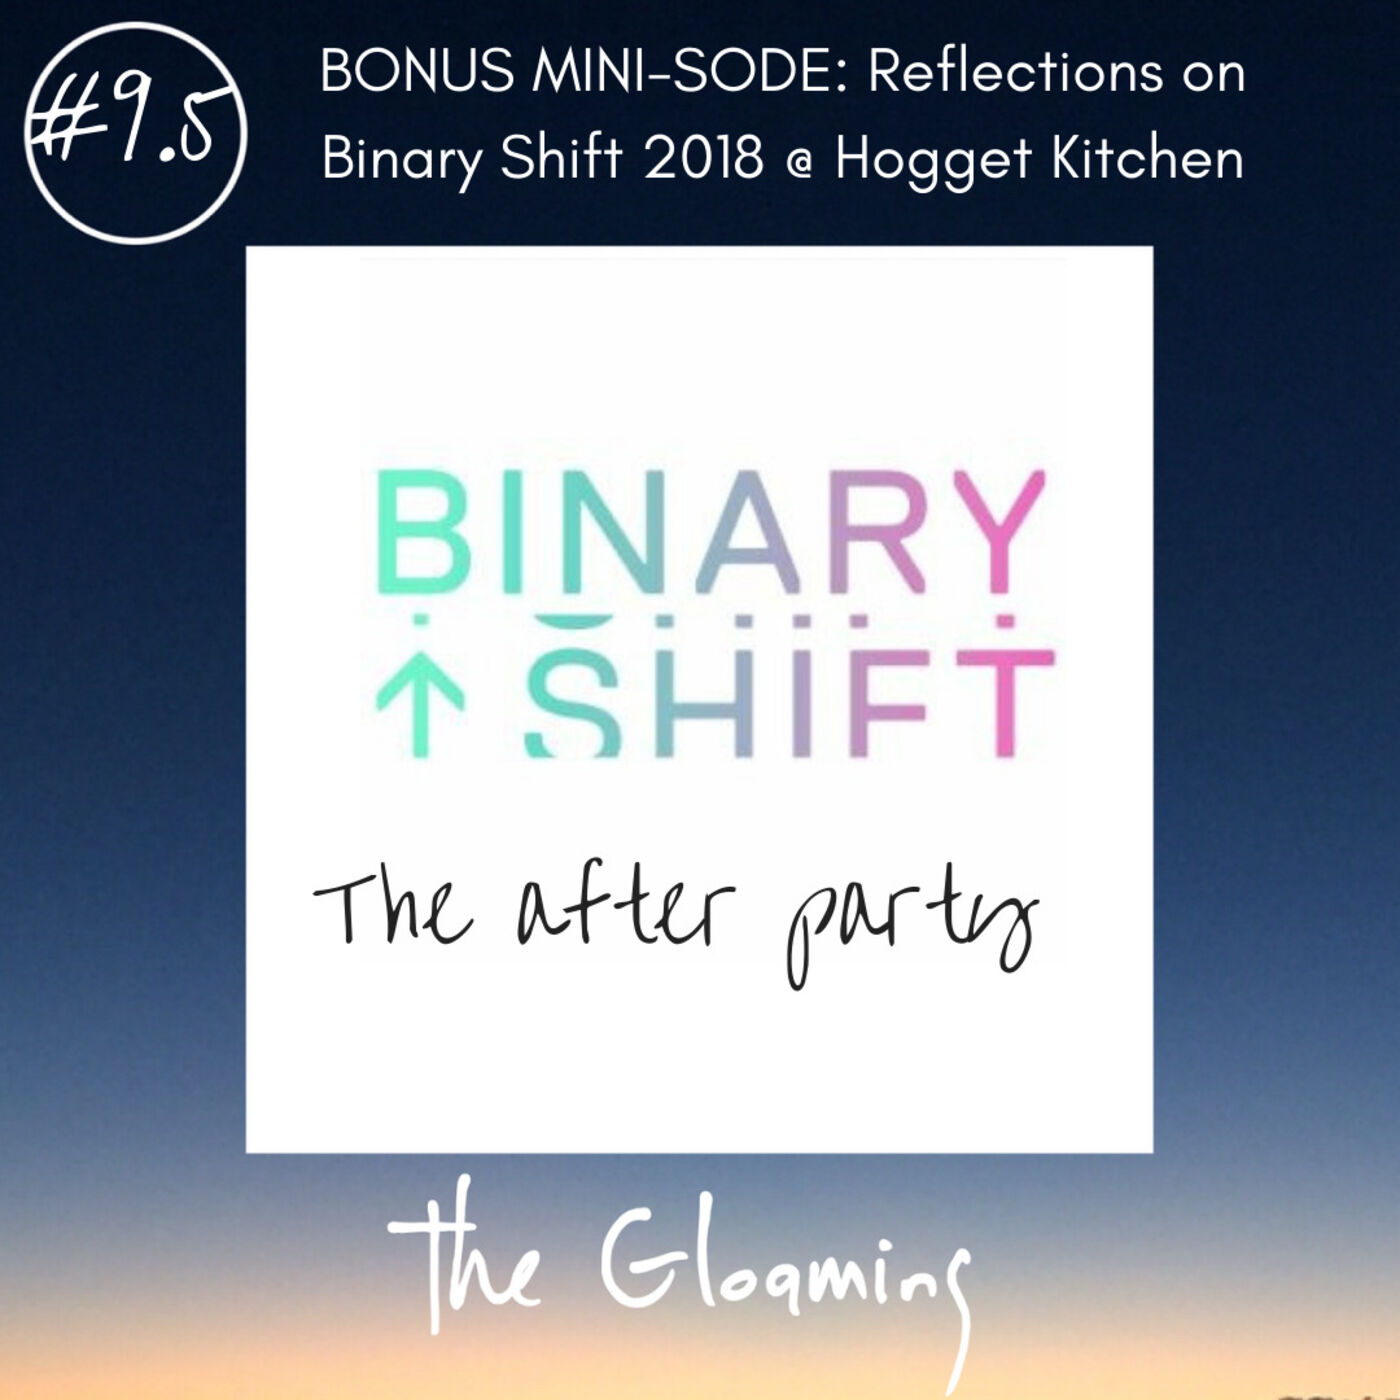 TG9.5 (BONUS): Reflections on Binary Shift 2018 @ the Hogget Kitchen afterparty